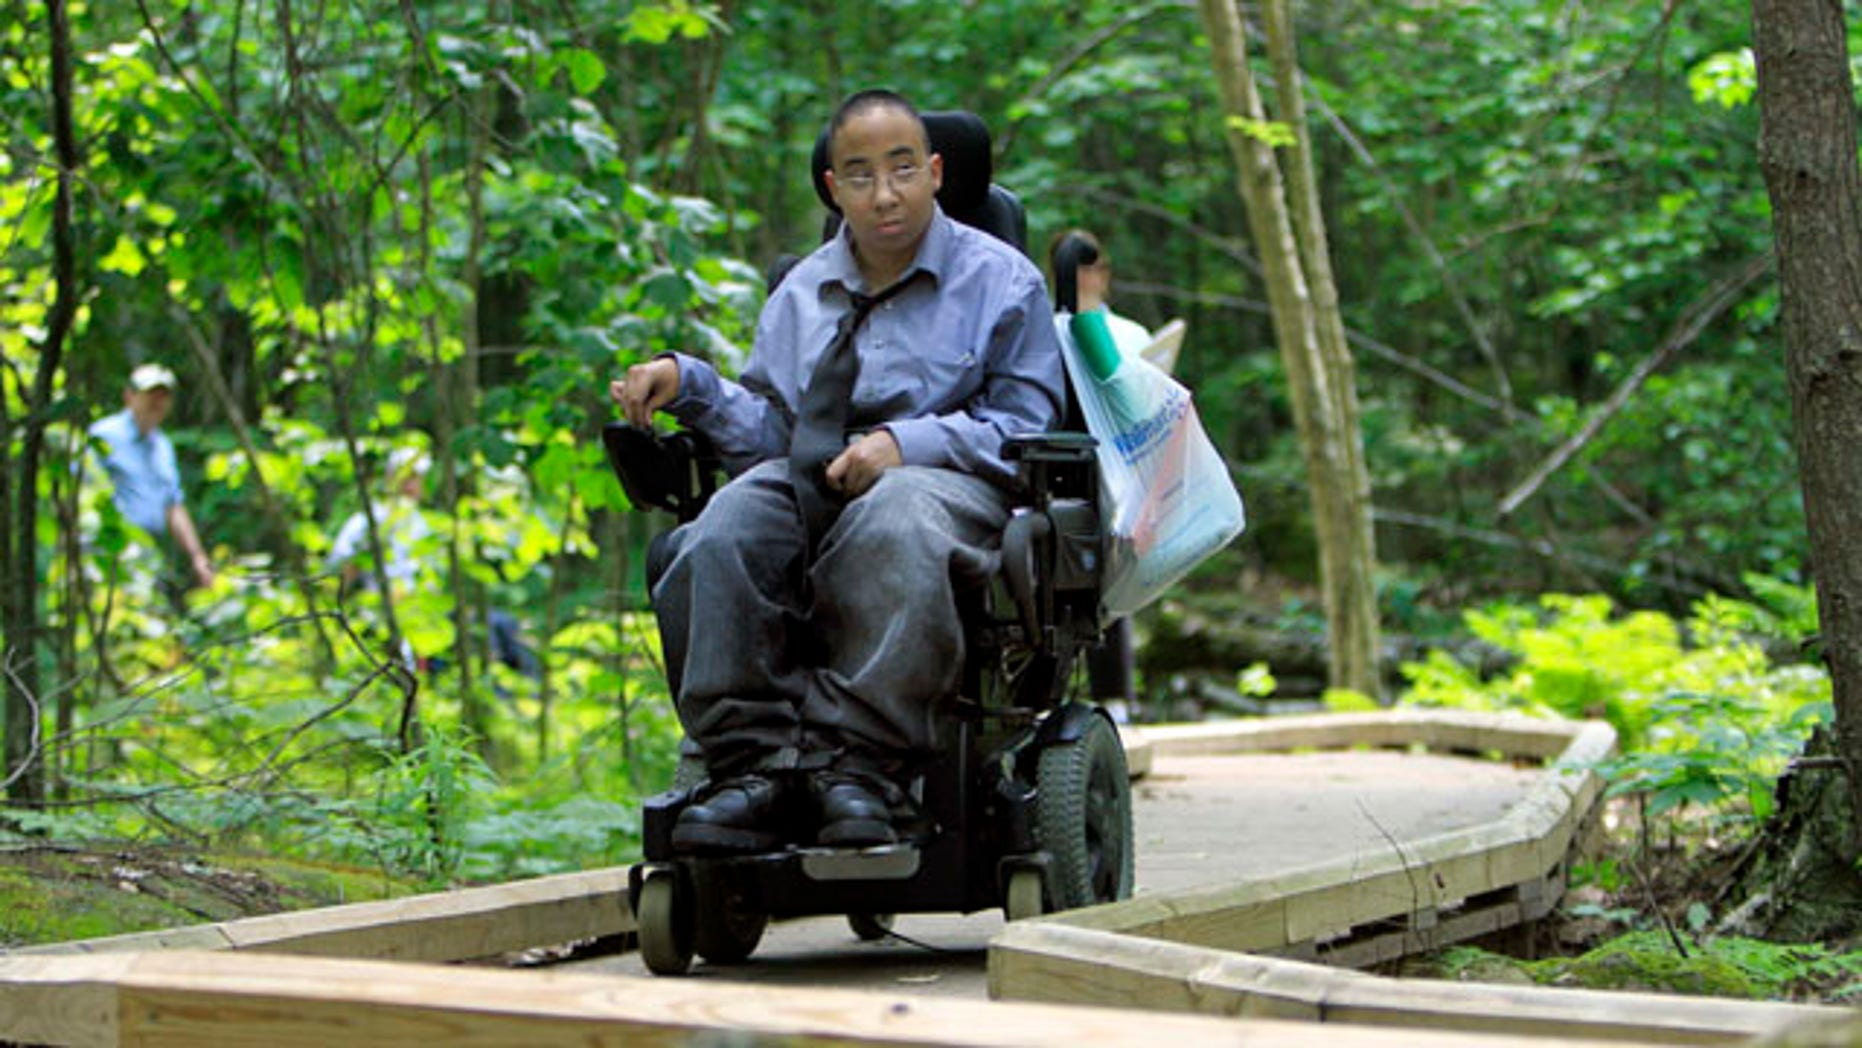 In this Thursday, June 16, 2011, photo, Chelsea Fernandez steers her wheelchair through the woods at the Crotched Mountain Rehabilitation Center in Greenfield, N.H. The center  offers  over 2.5 miles of  privately funded trails designed to be easily accessible for people in wheelchairs and those who have difficulty walking. (AP Photo/Jim Cole)